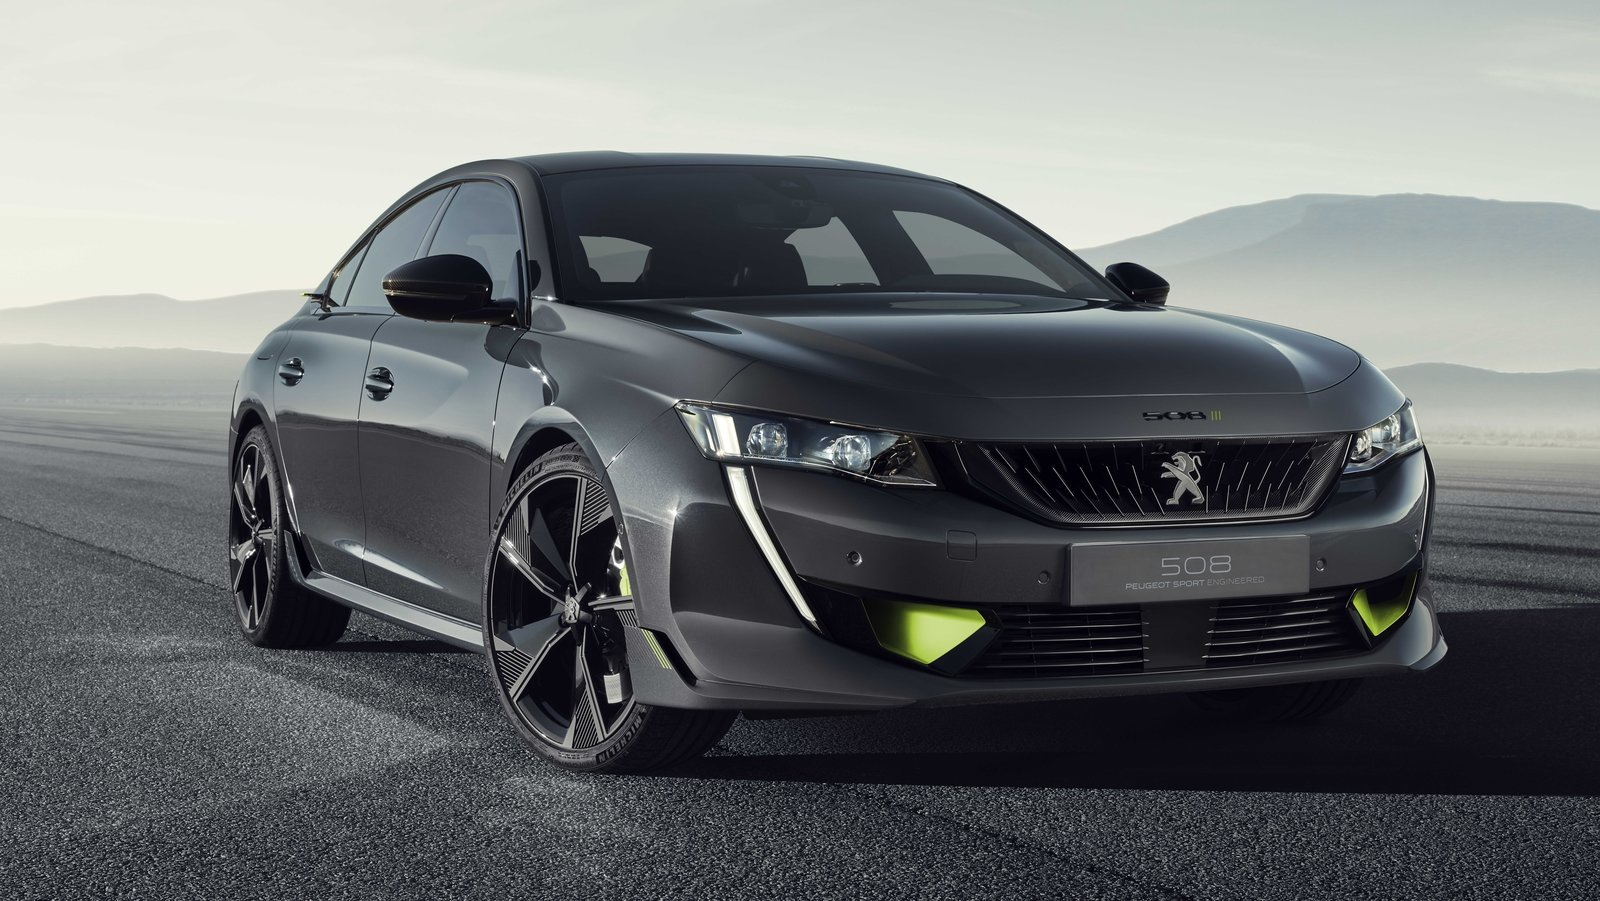 2019 Peugeot 508 Sport Engineering Concept Pictures ...